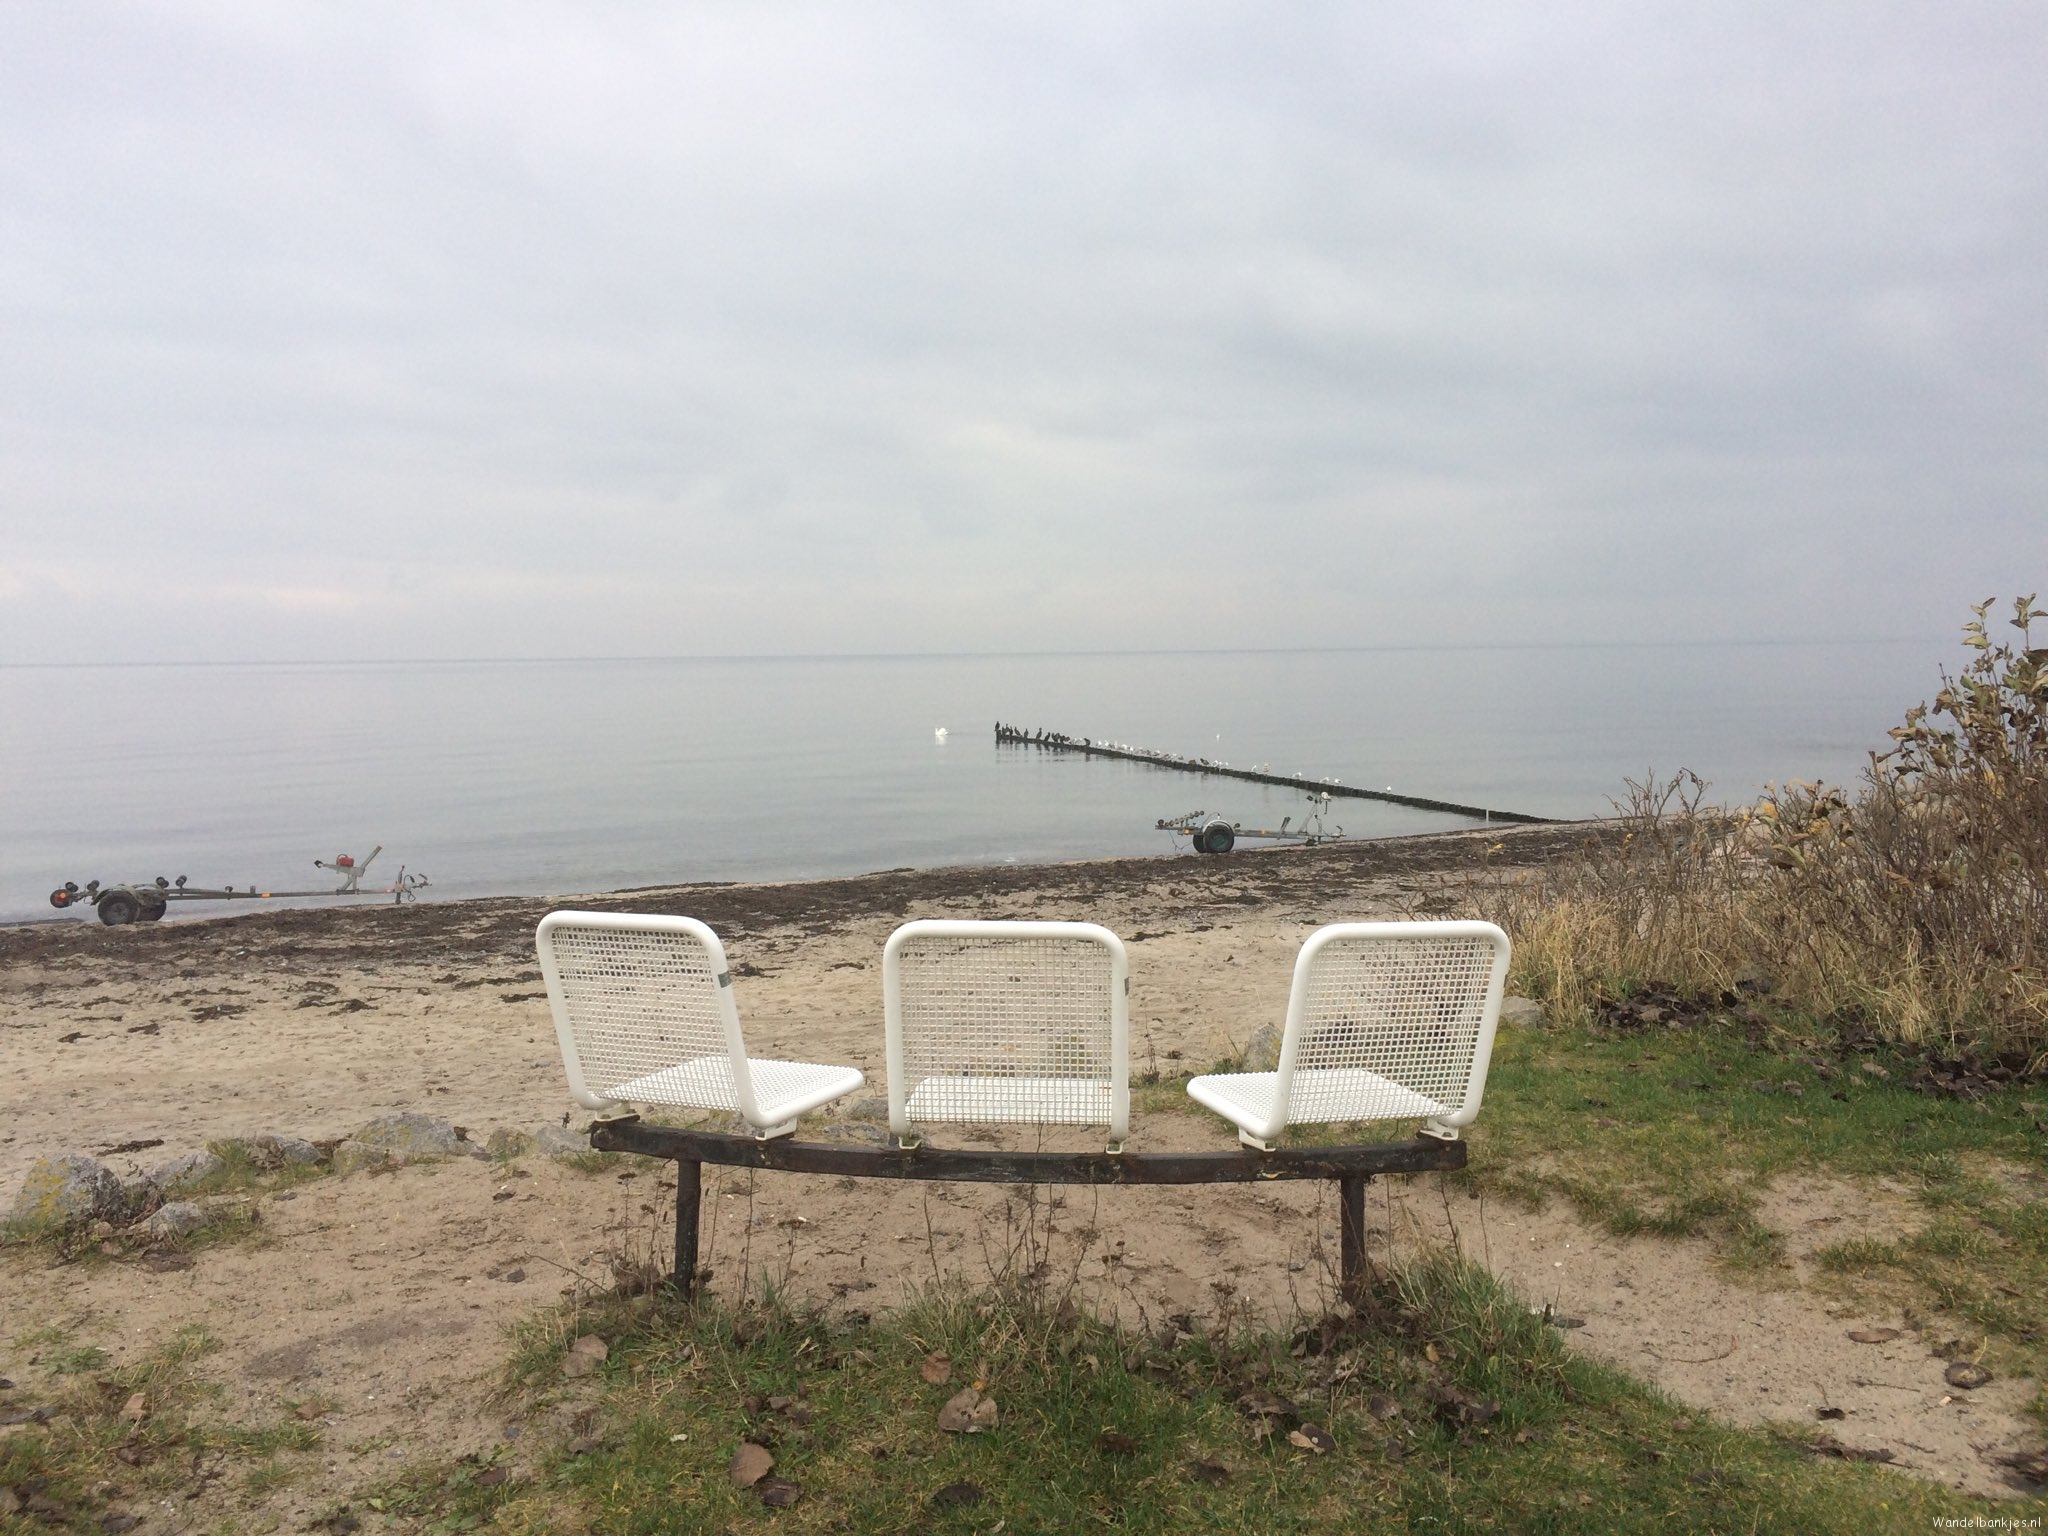 rt-alootsma-beautiful-hiking-benches-at-boltenhagen-with-a-mirror-smooth-sea-https-t-co-7d6rw38siu